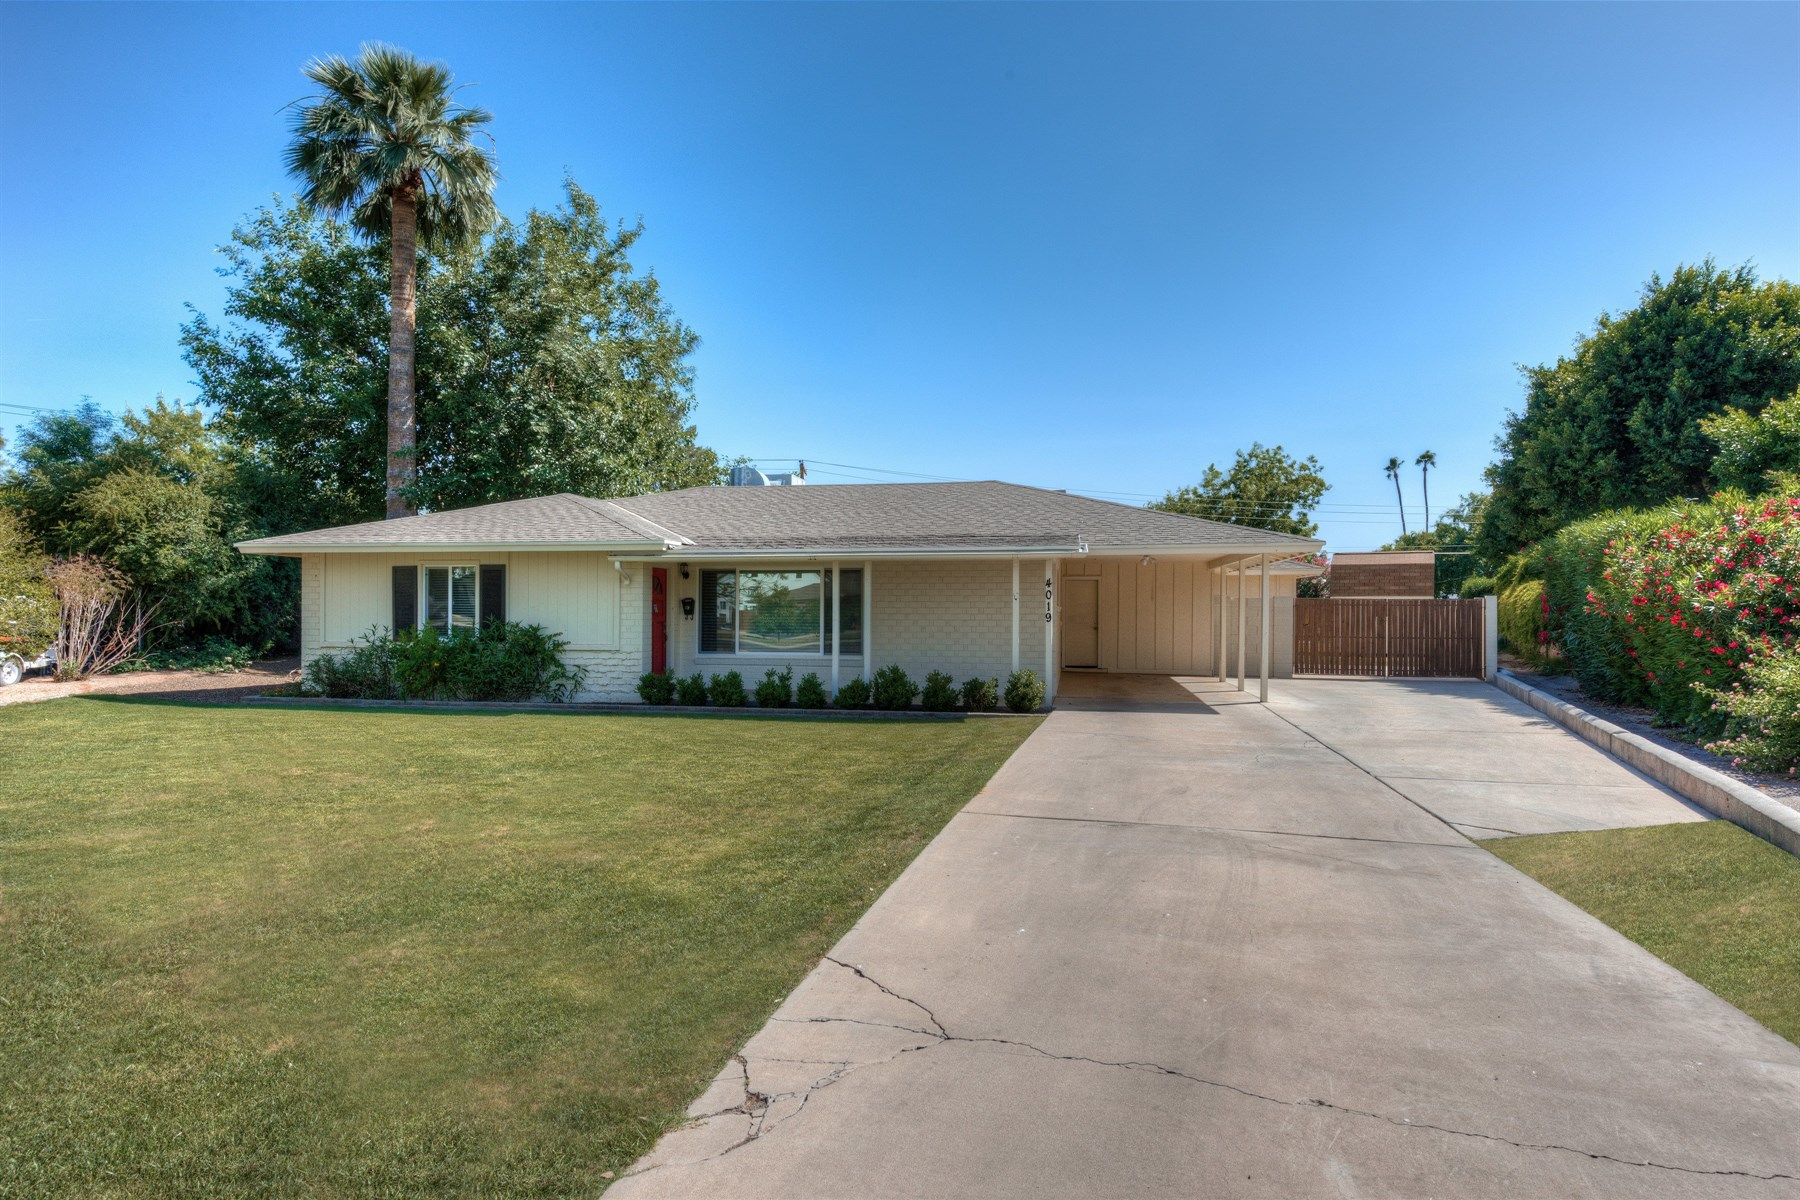 Vivienda unifamiliar por un Venta en charming home is situated on the largest lot near the BlitmoreArcadia area 4019 E Whitton Ave Phoenix, Arizona, 85018 Estados Unidos